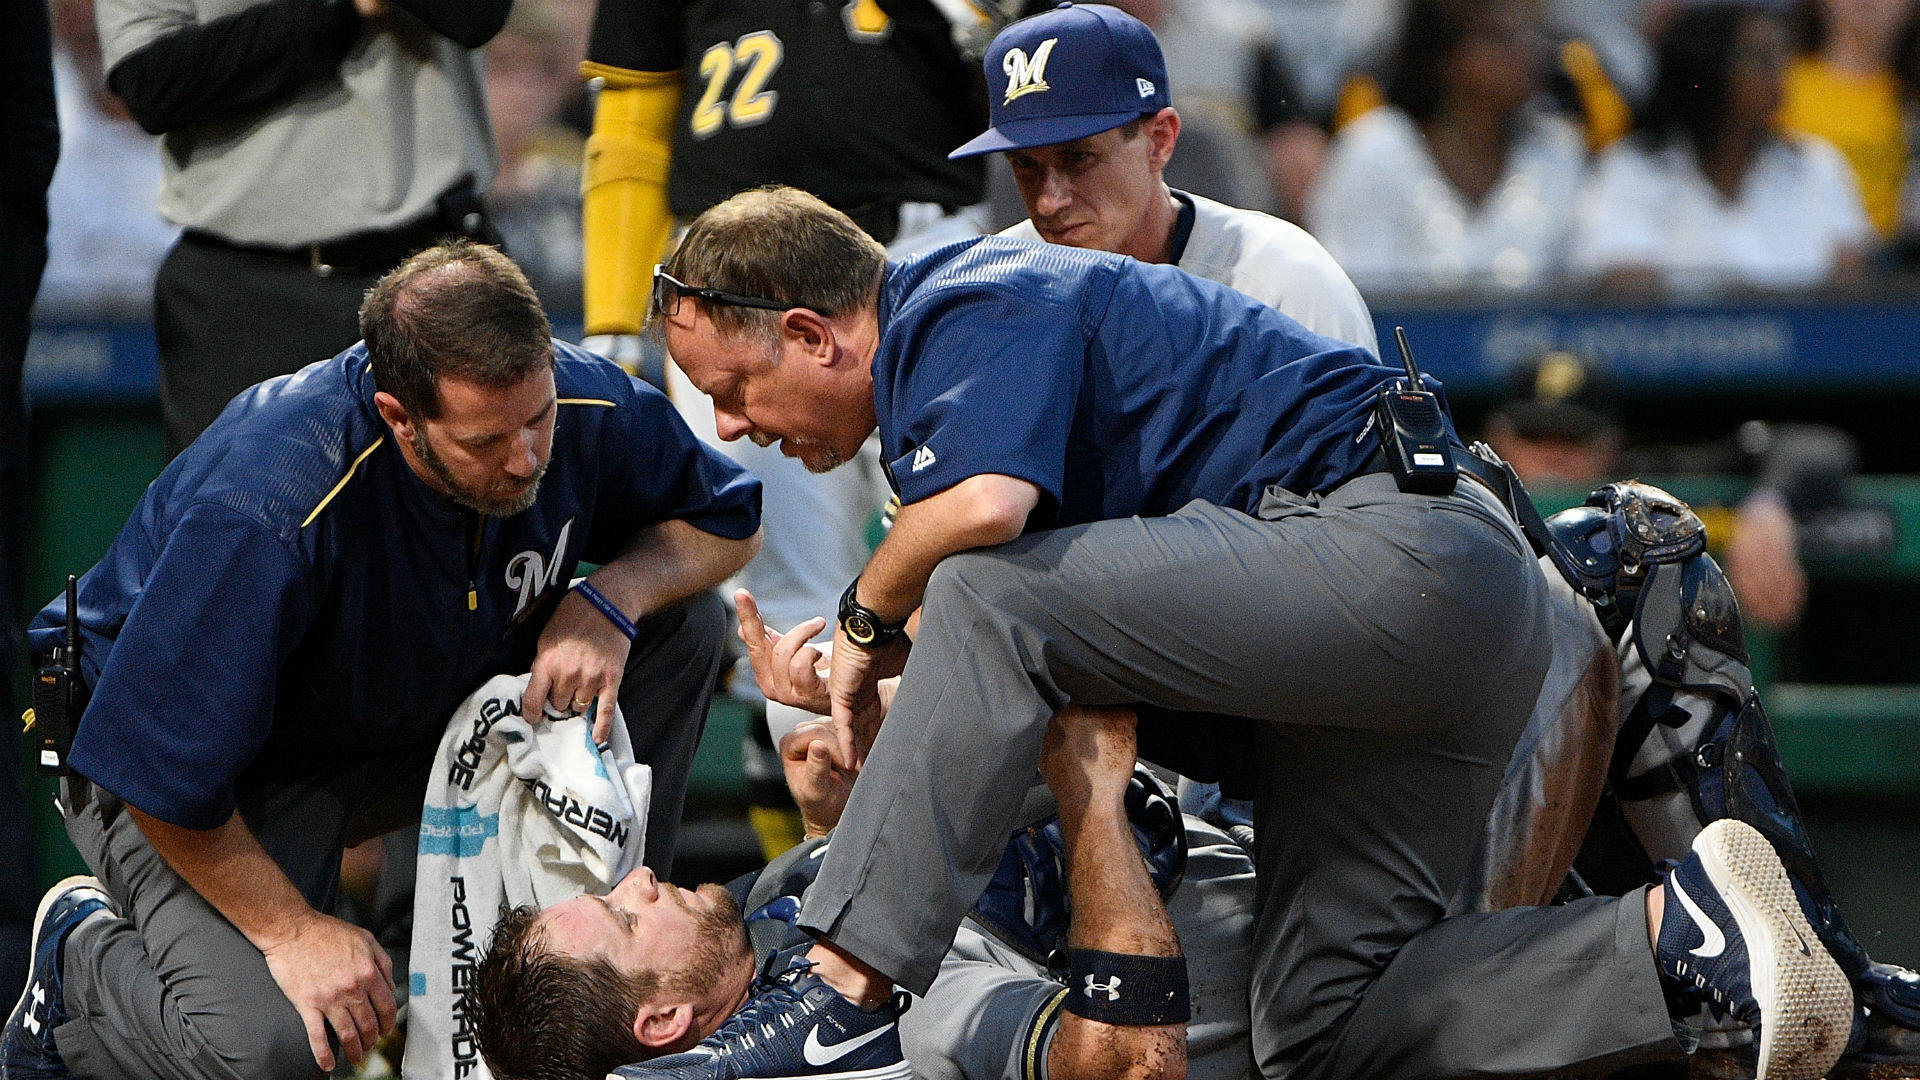 Brutal home plate collision a bad break for Vogt, Brewers and Major League Baseball